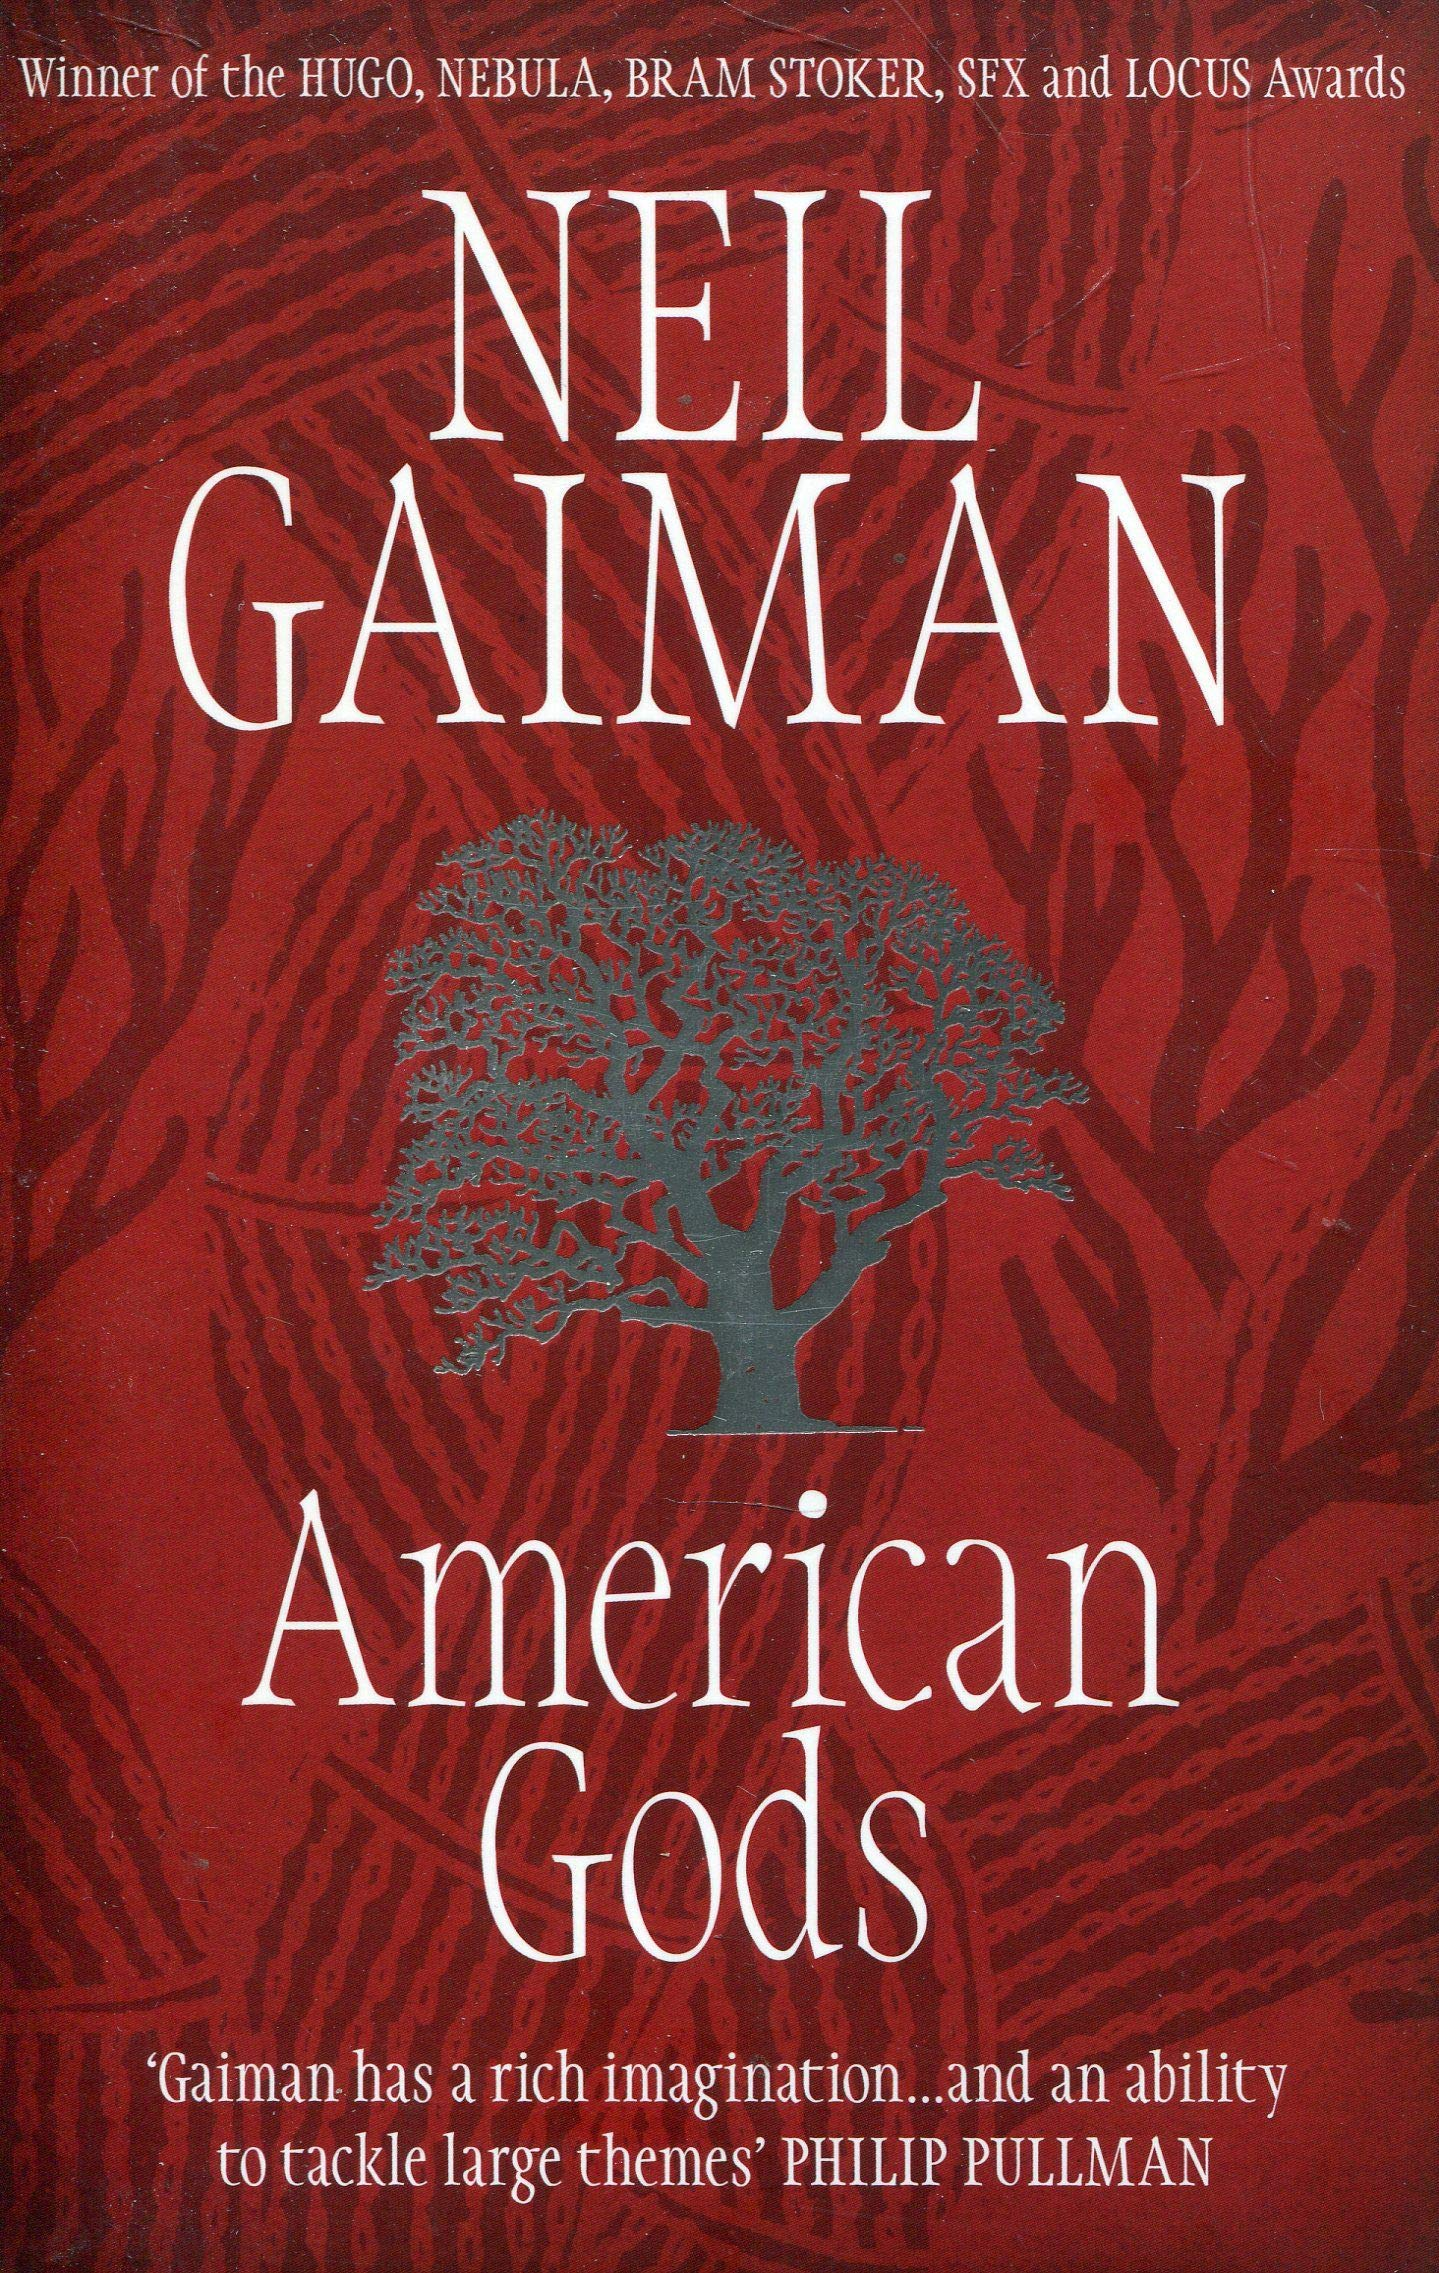 Image result for american gods book cover